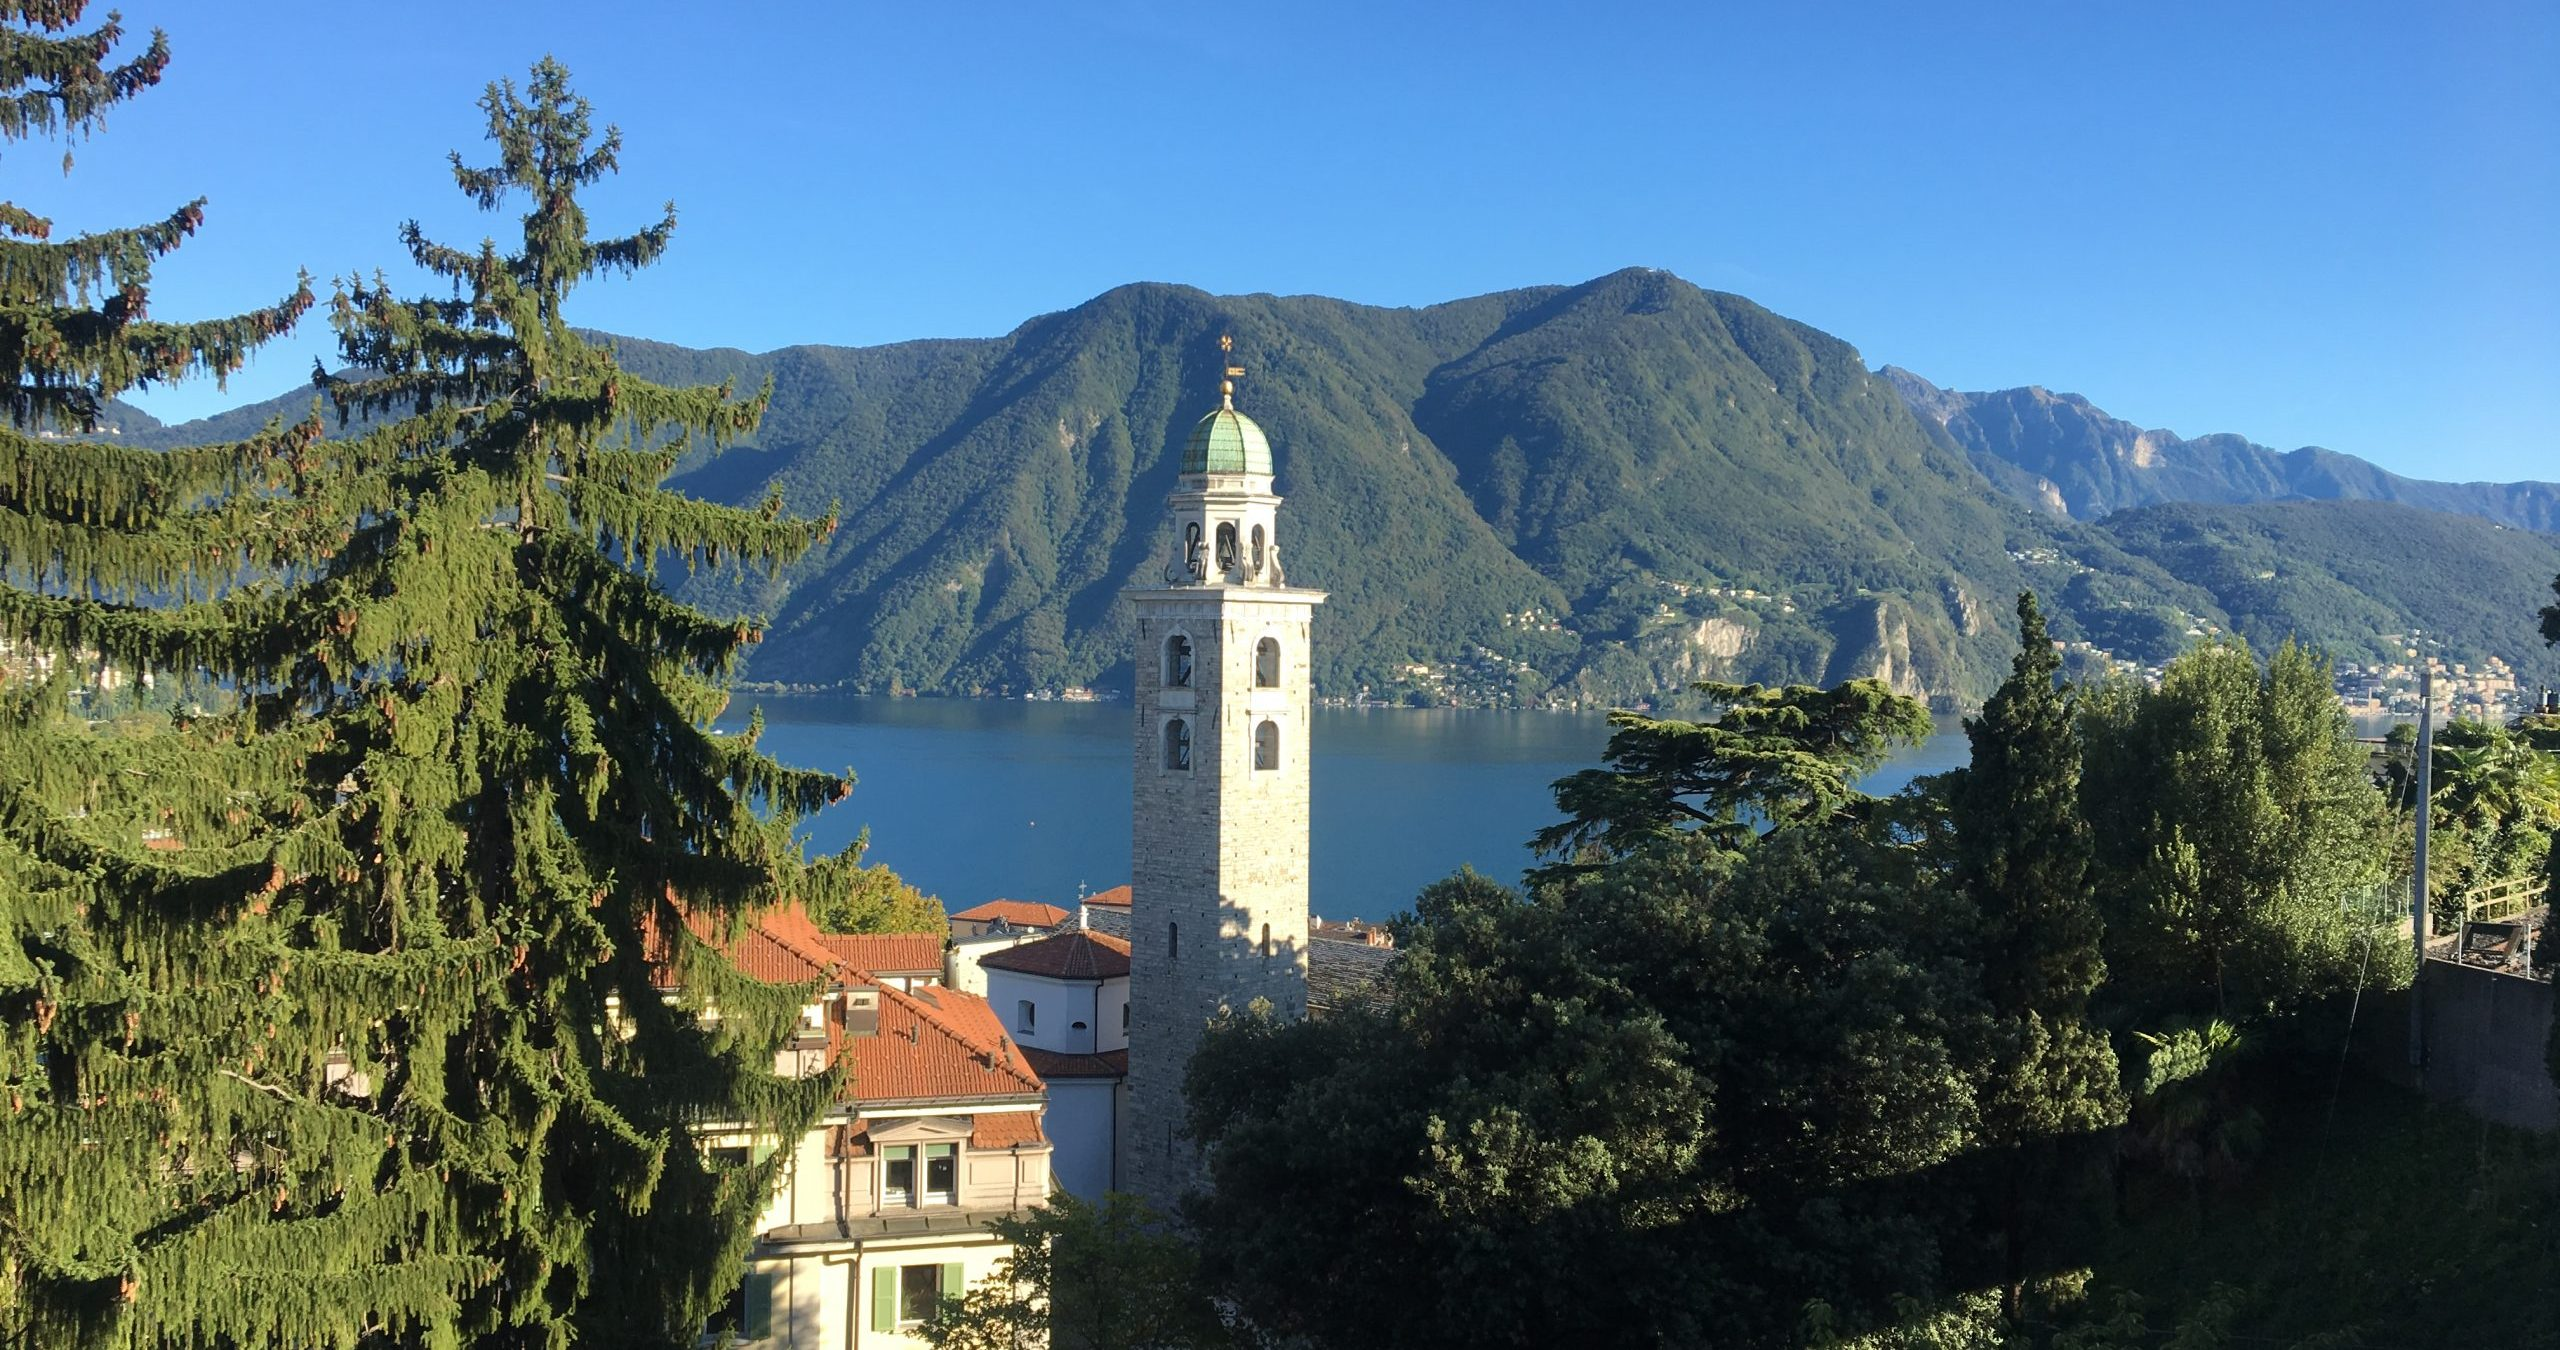 Lugano - amazing destinations to travel around in Switzerland